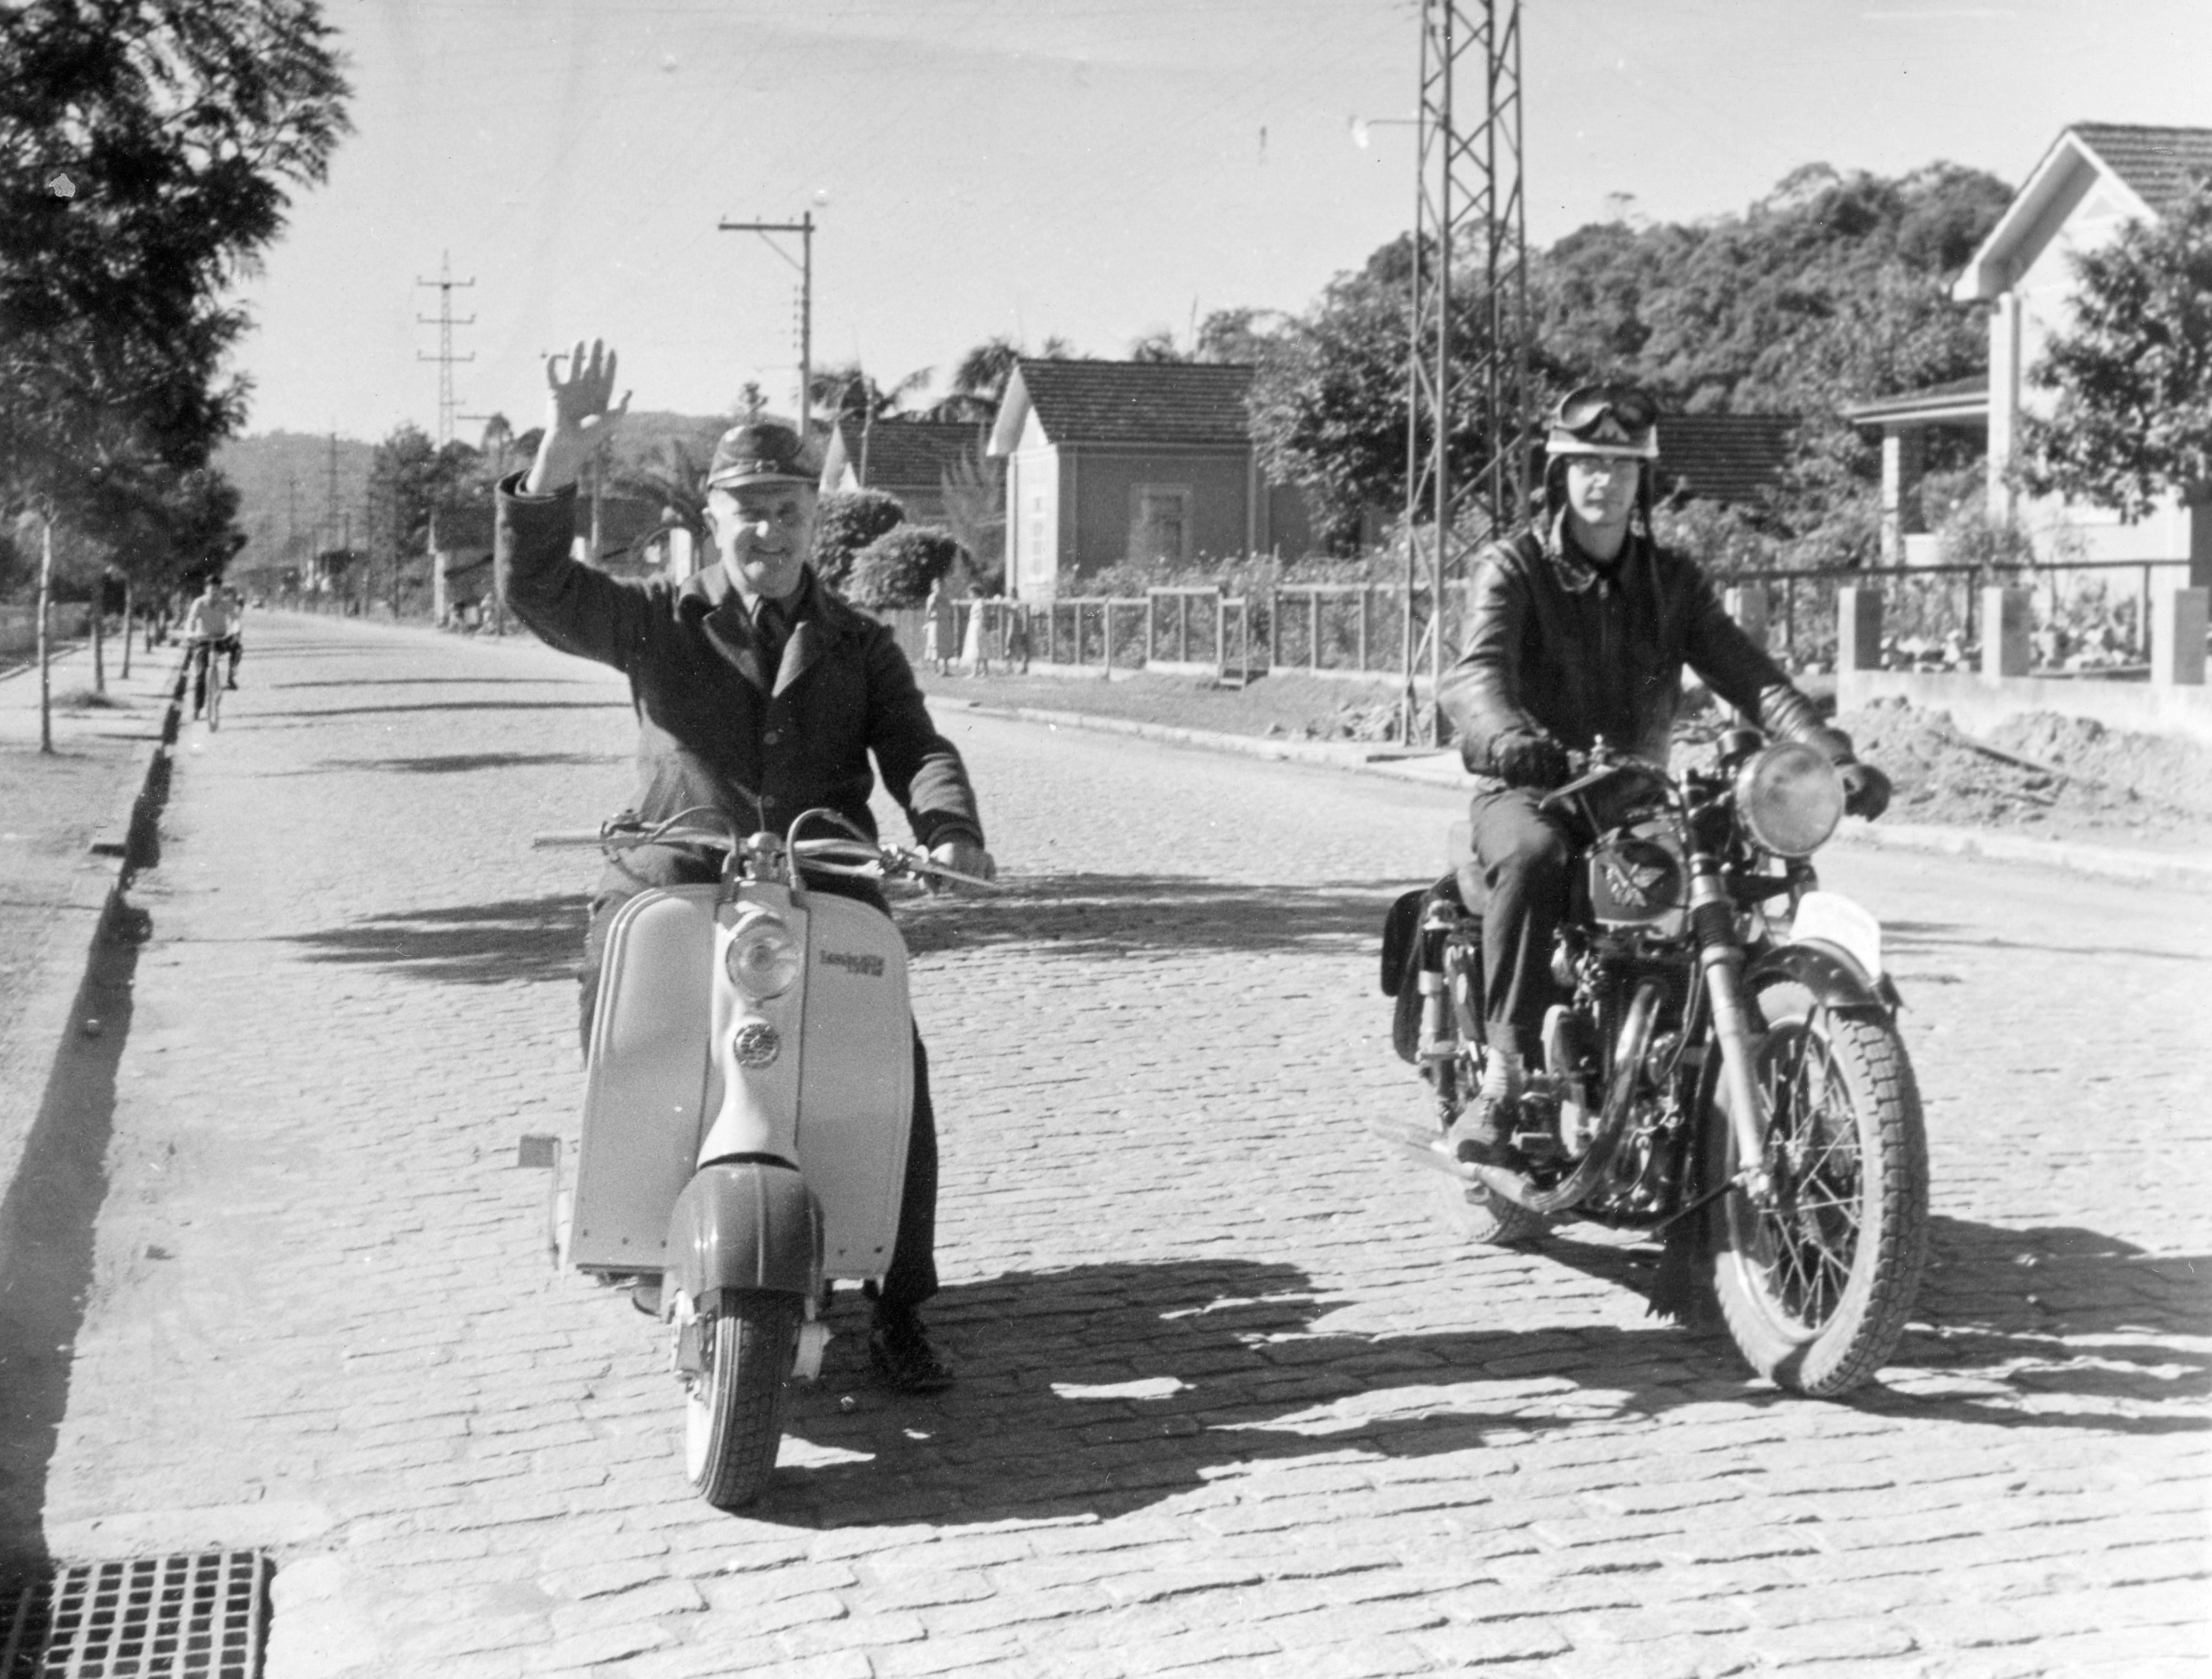 """28.8.1958. Myself and one of my grandsons taken in a main street of Joinville Est. S.C. I'm sending you this so you do not forget me. As you see, I have bought another Lambretta for cruising around in. Greetings from the bicycle city. Jacob Bachmann snr. in Brusque, Brazil."""